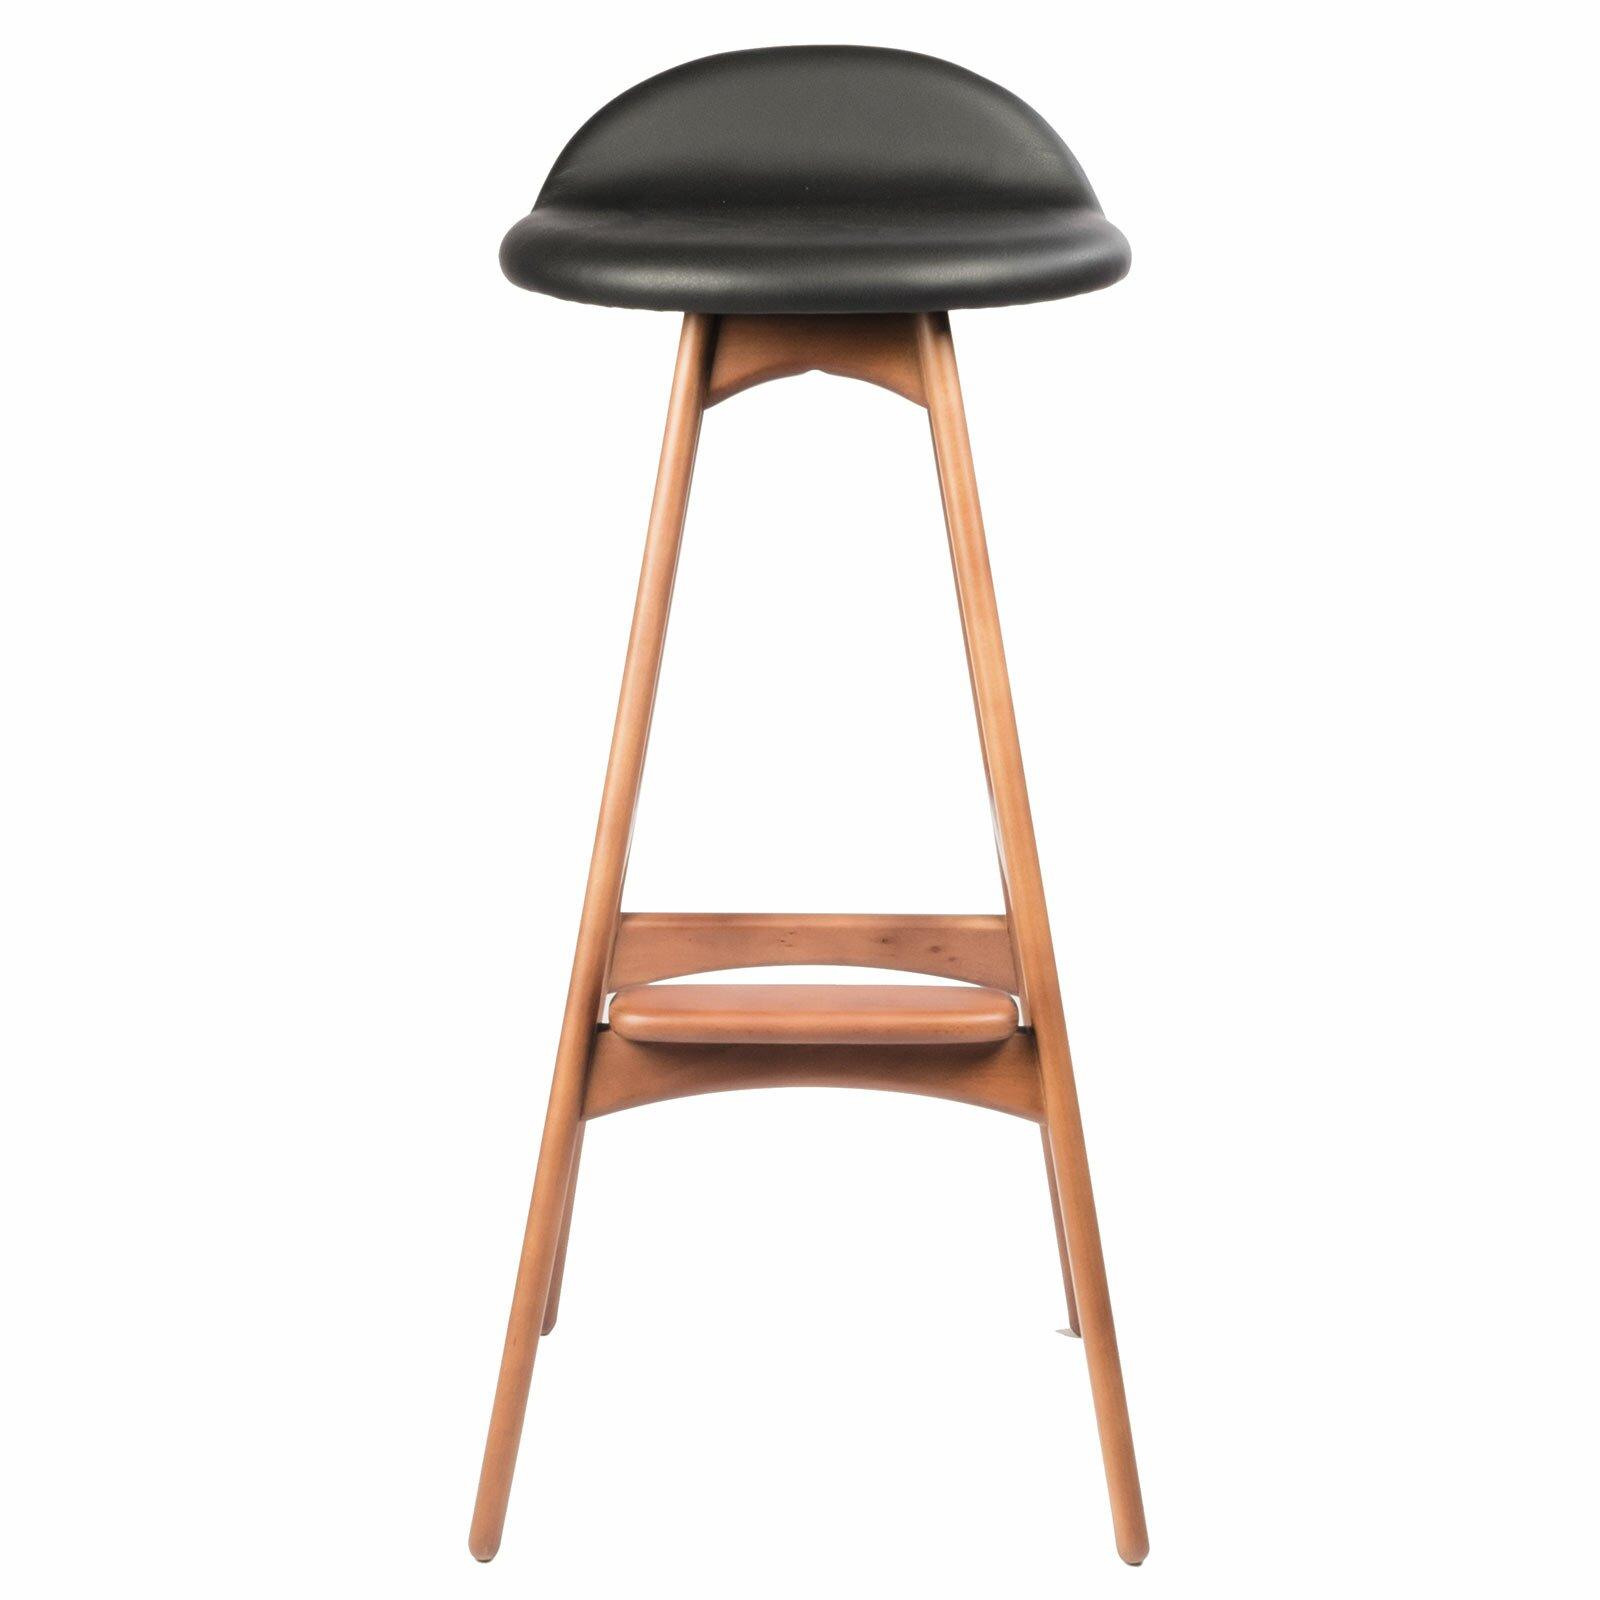 Polivaz erik buch 30 bar stool wayfair - Erik buch bar stool ...